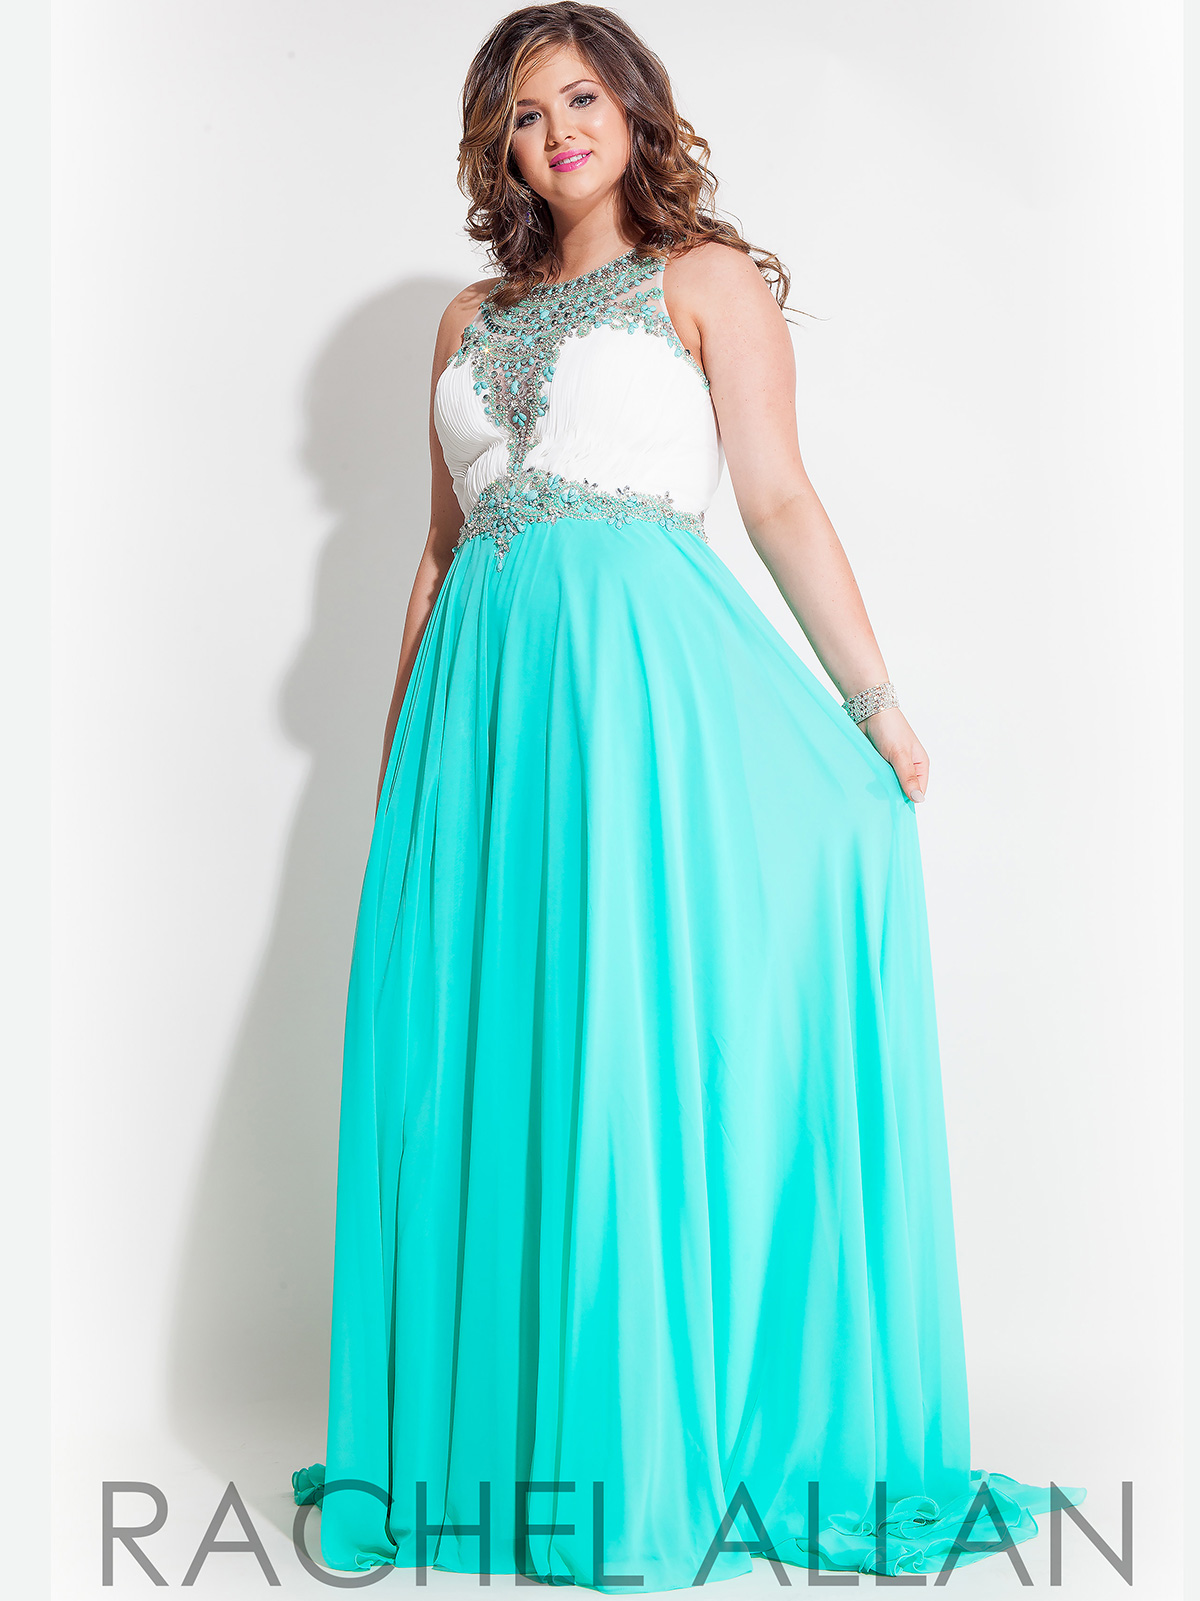 Plus Size Dresses Weddings And Proms | Elegant Weddings